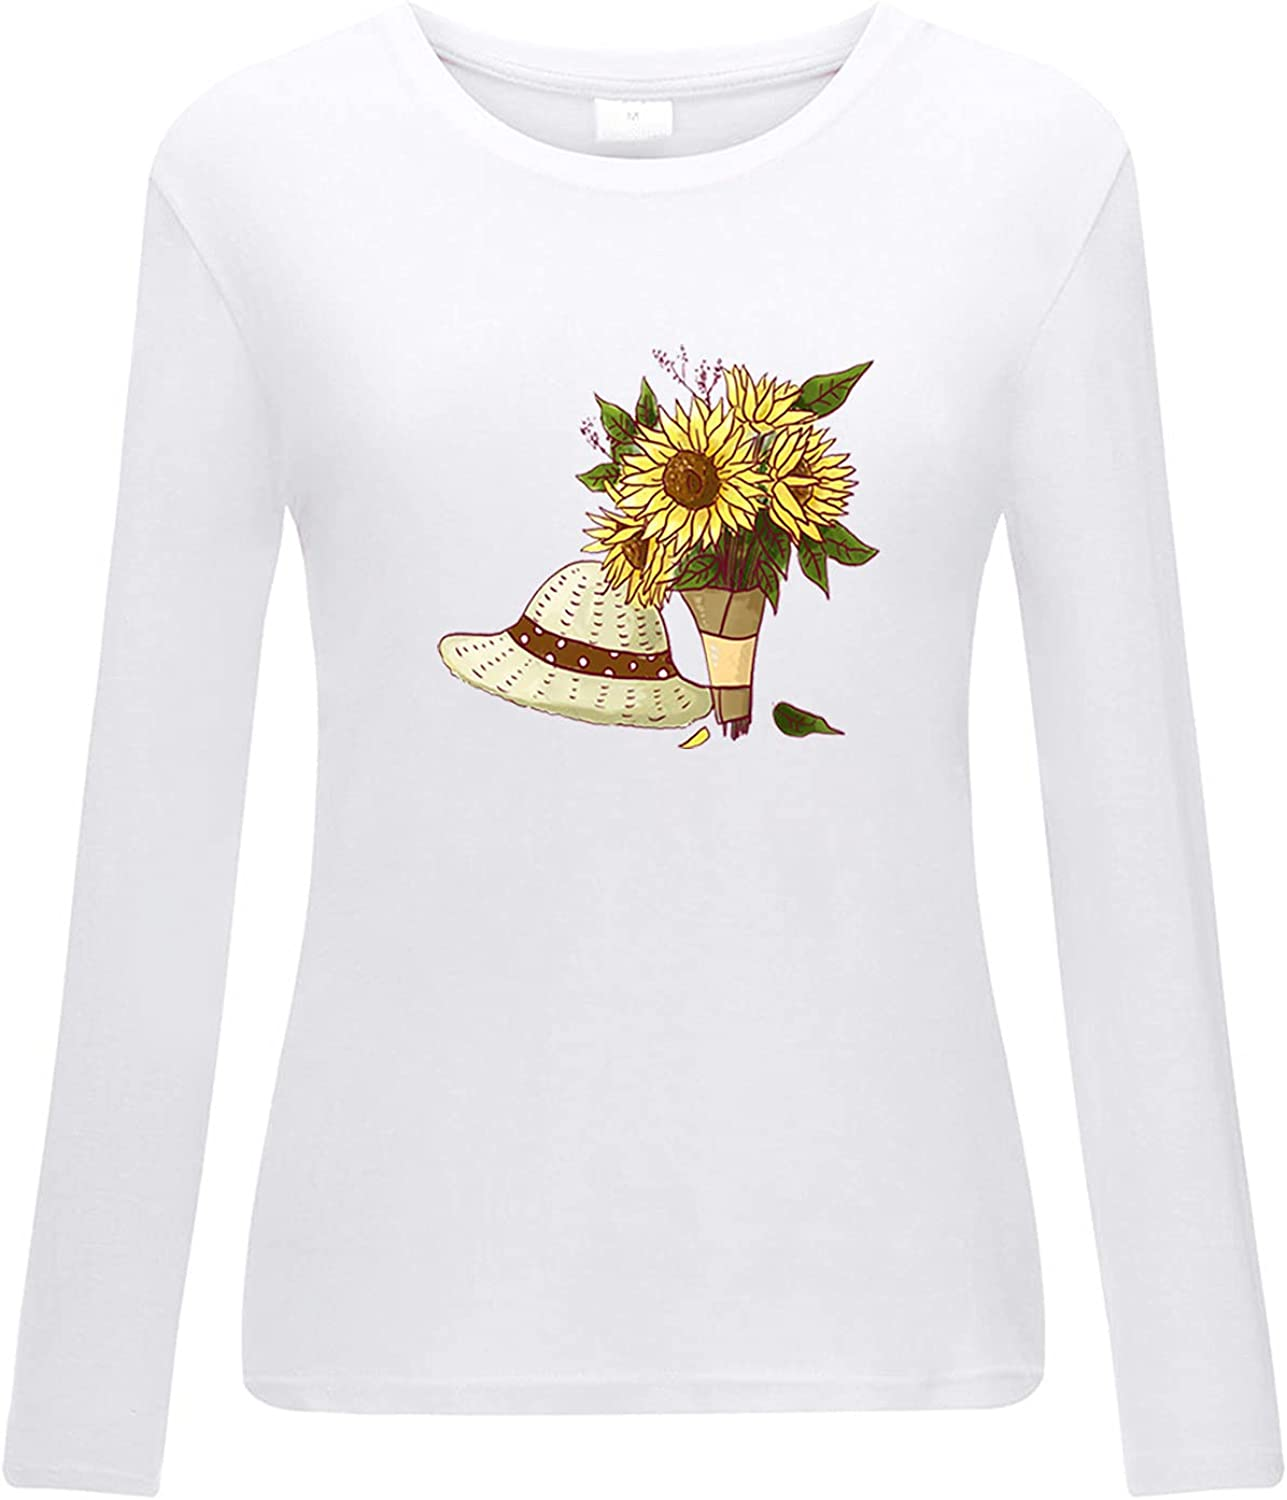 5665 Womens Sweatshirt Plus Size Tshirts Fall Long Sleeves Crewneck Sunflower Bouquet Graphic Fake 2pc Casual Beach Pullovers